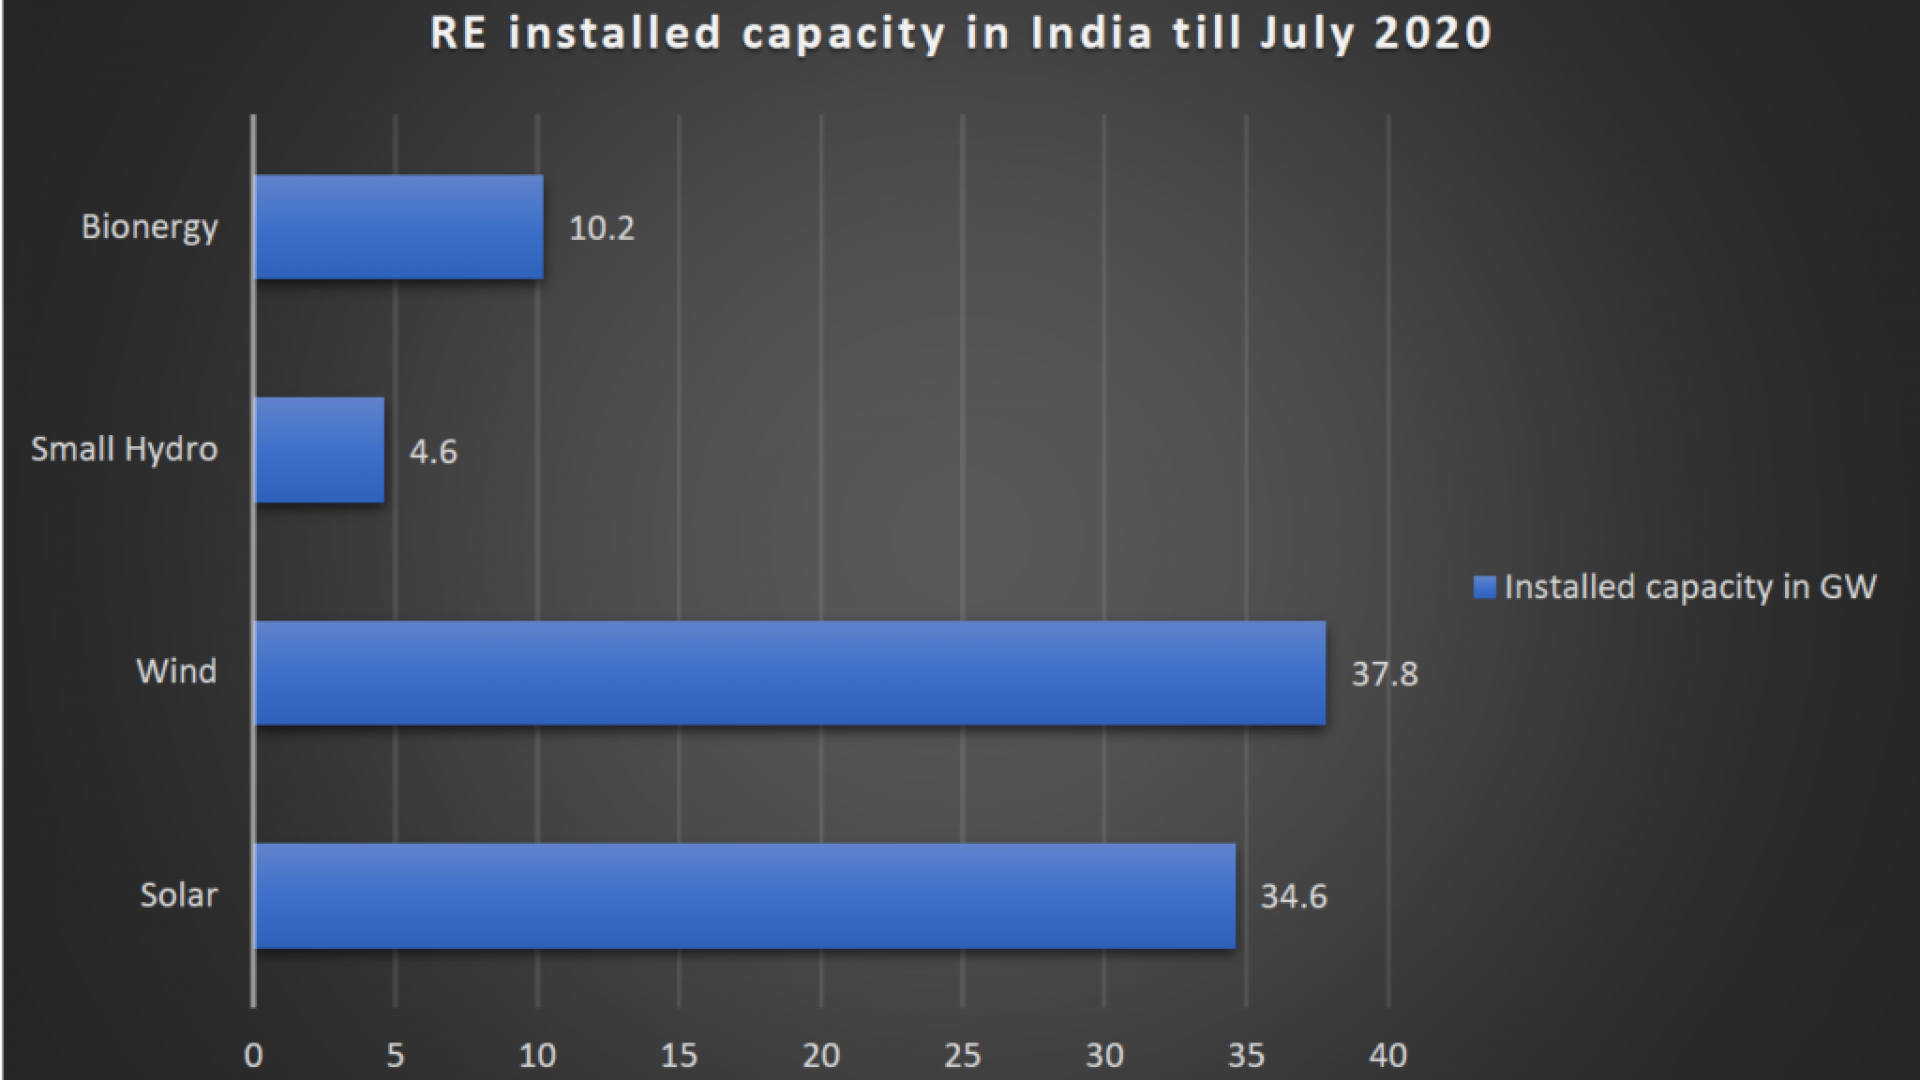 Figure 1: RE installed capacity in India till July 2020(Source: Vasudha Power Sector Analysis)